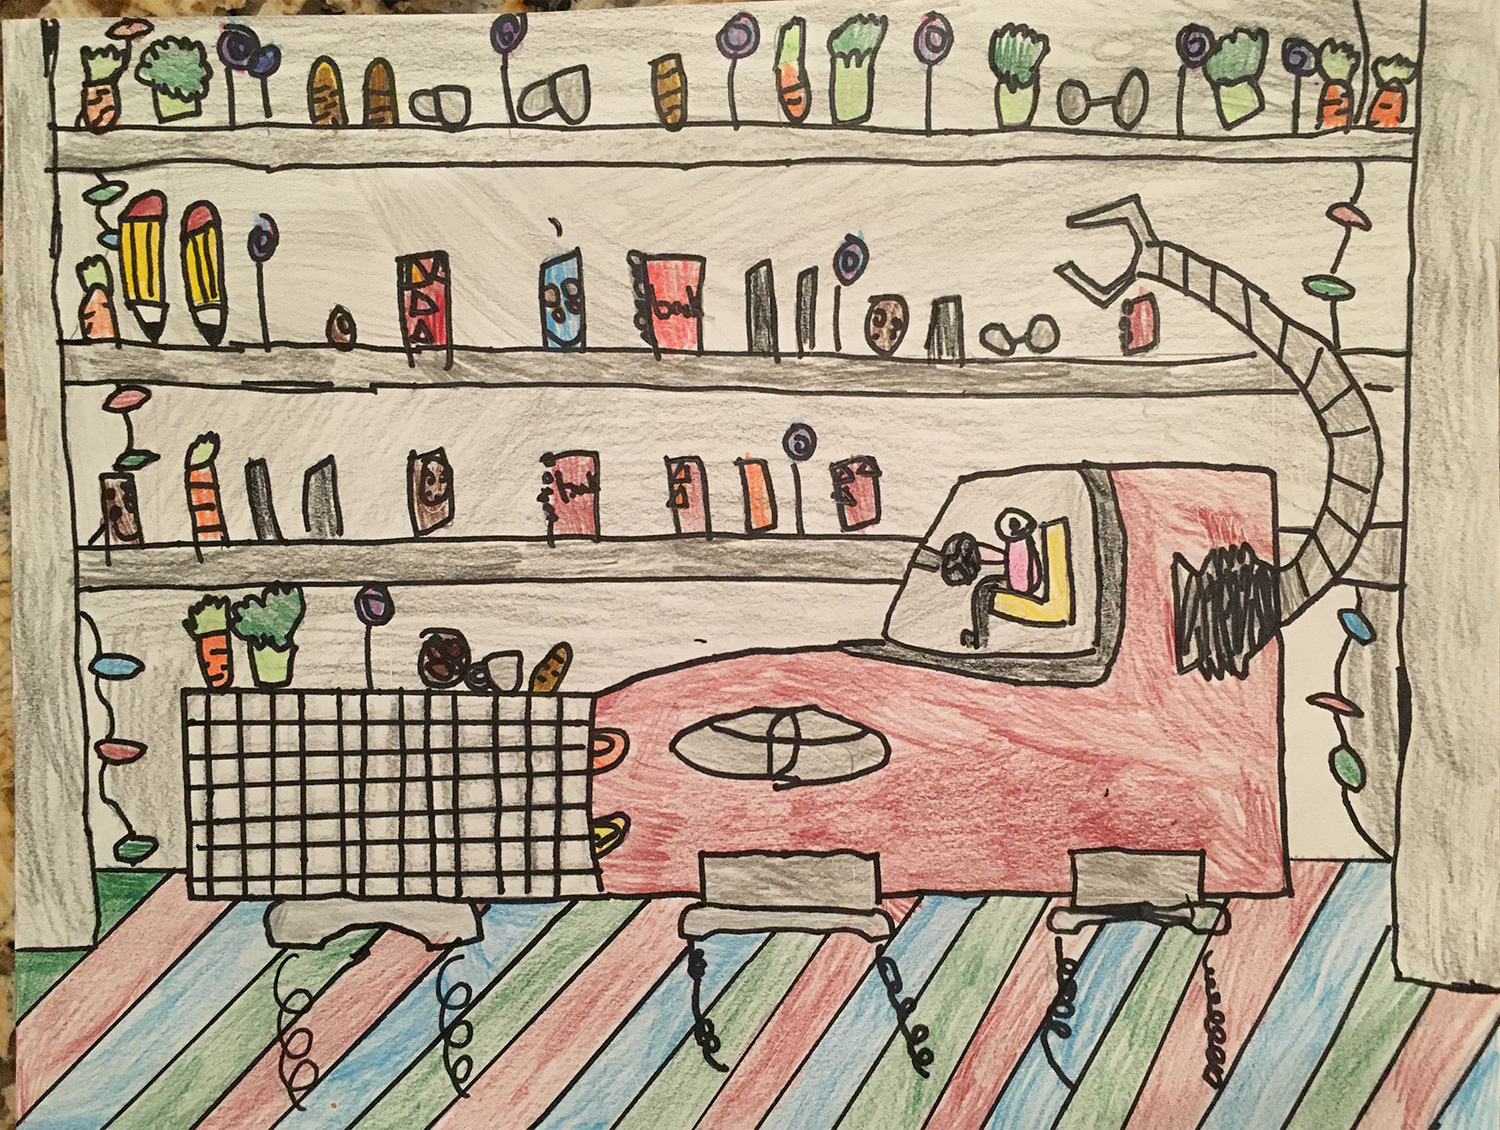 The Shopping Car, Emily Hao, age 6